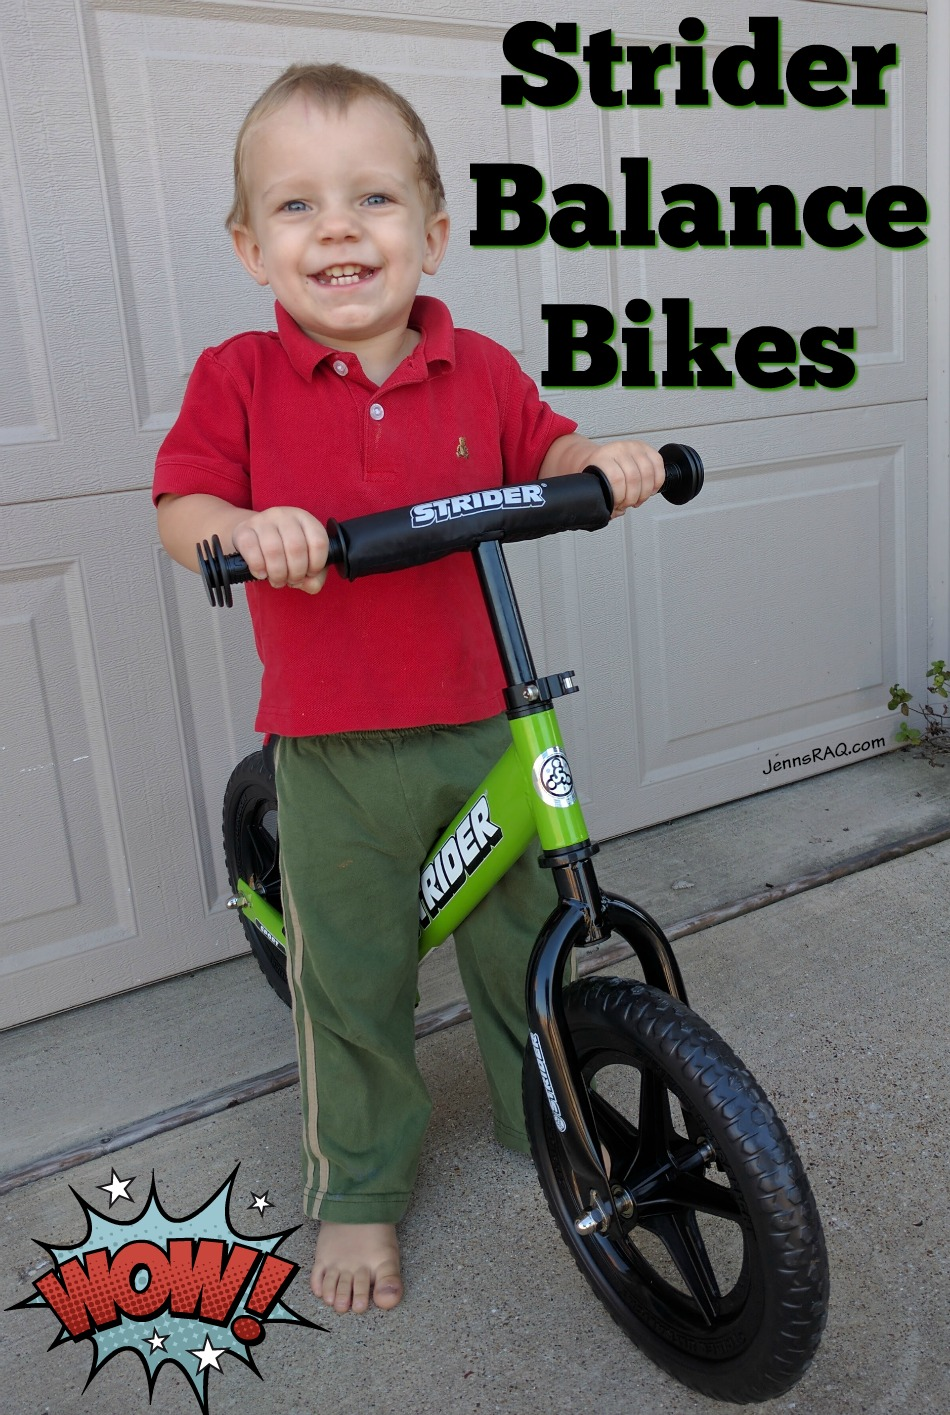 Strider Balance Bikes Make Great Gifts - As seen on JennsRAQ.com